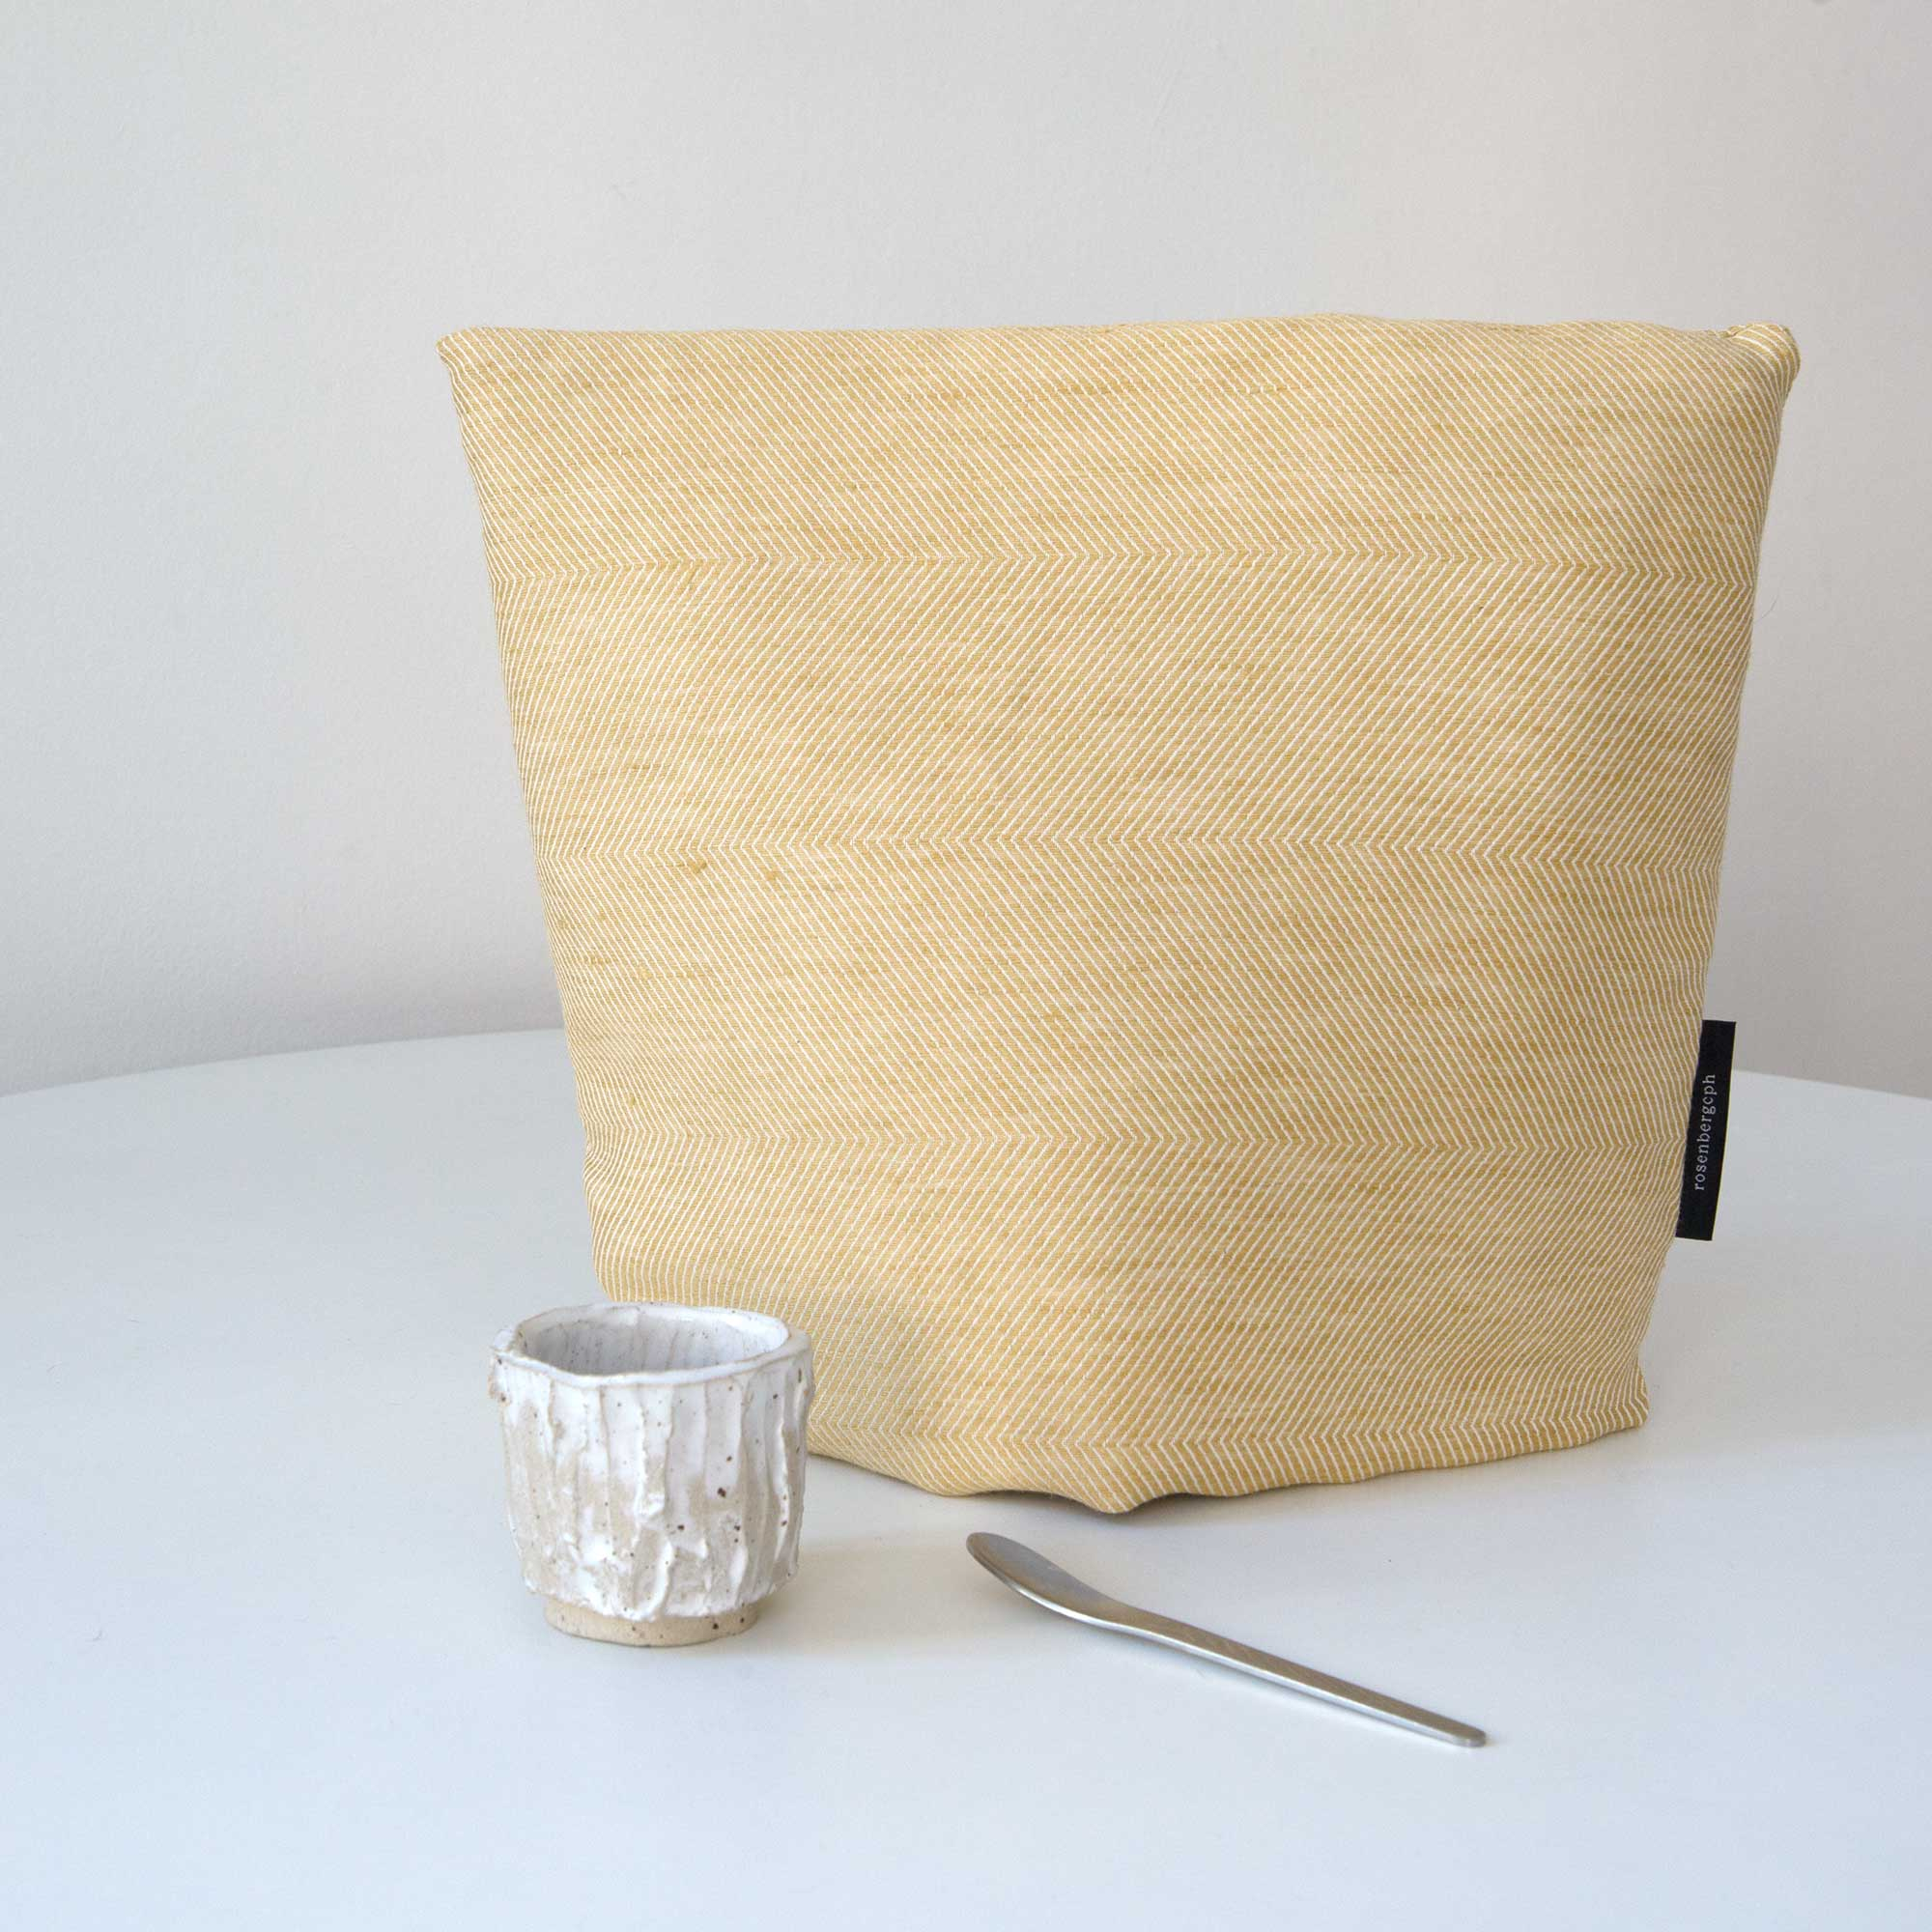 tea cosy, hay yellow, linen/cotton, design by Anne Rosenberg, RosenbergCph